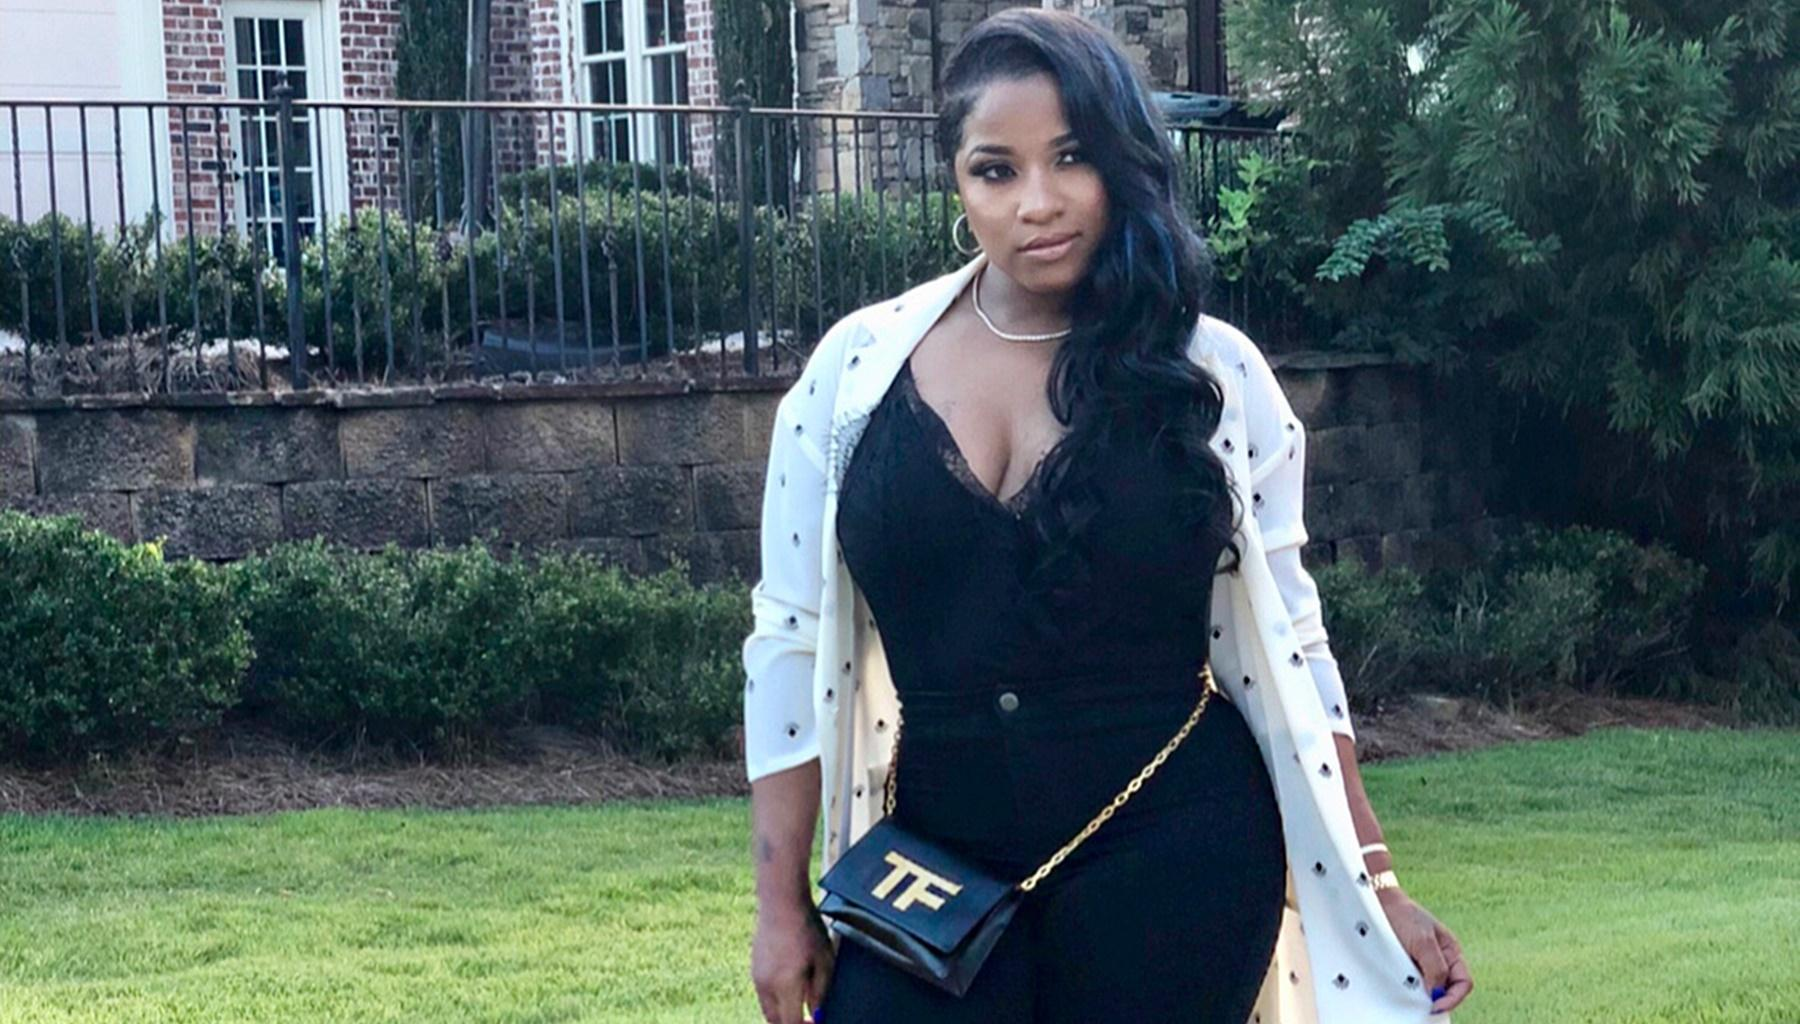 Toya Wright Shares A Photo With Her Mom Anita, And Sister Anisha Johnson - Fans Get Emotional Because Anisha Looks Just Like Late Rudy Johnson